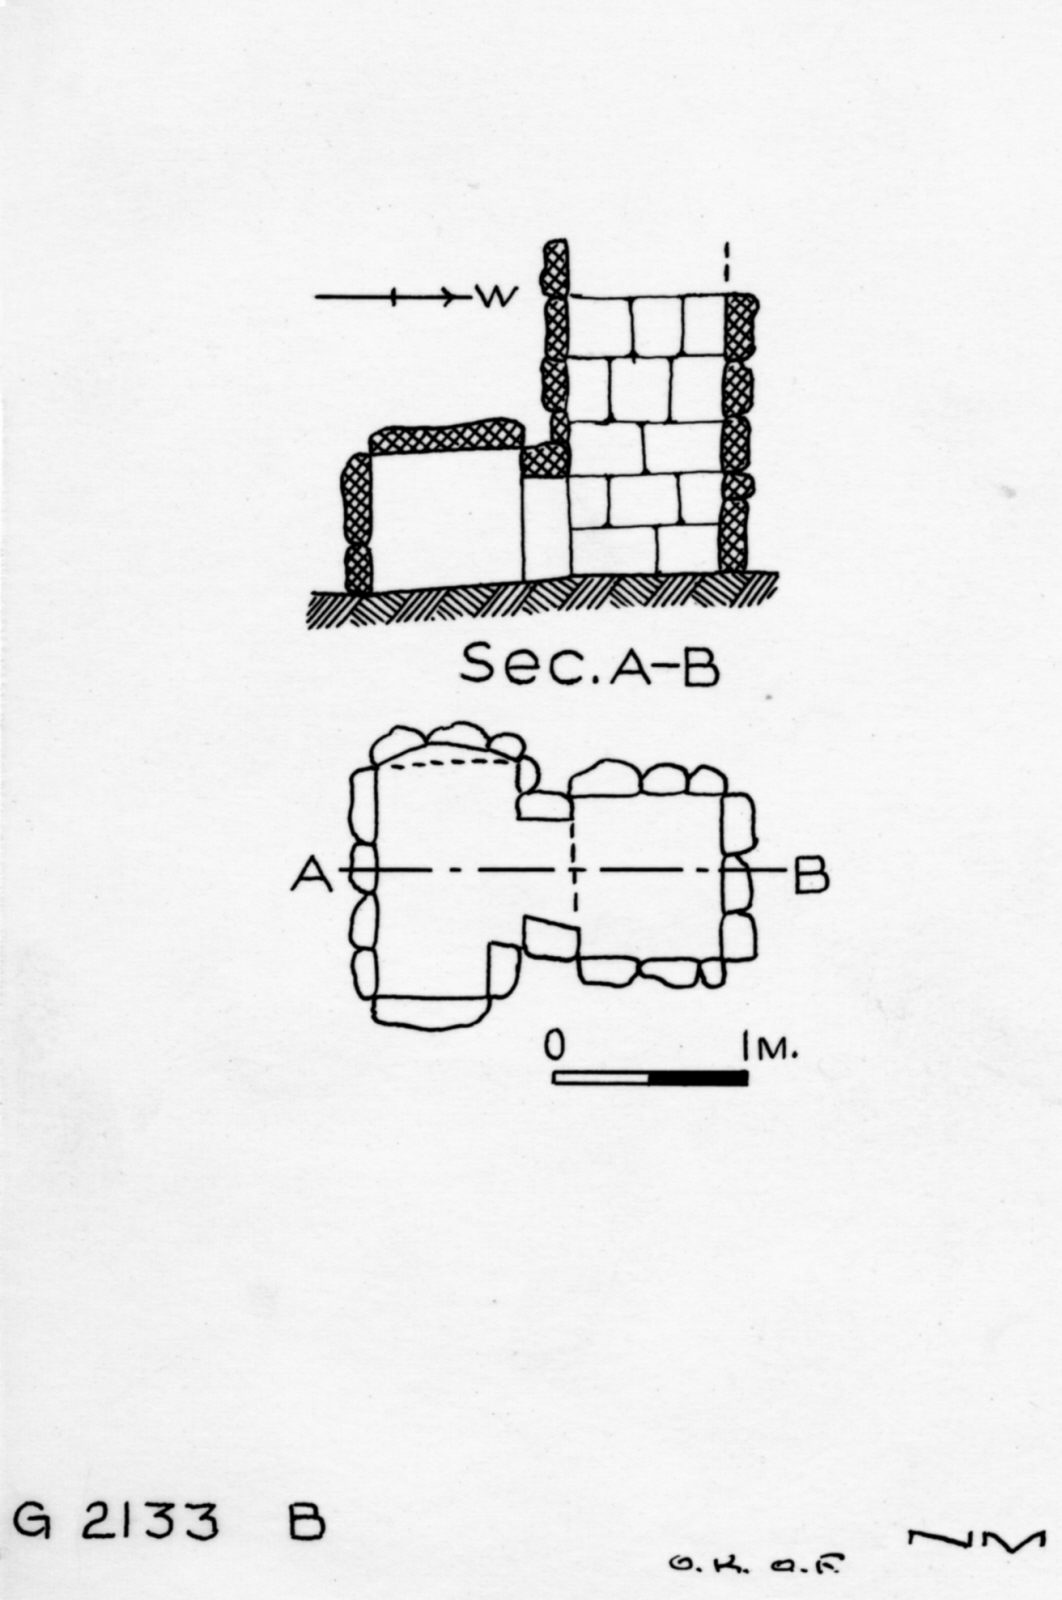 Maps and plans: G 2133, Shaft B